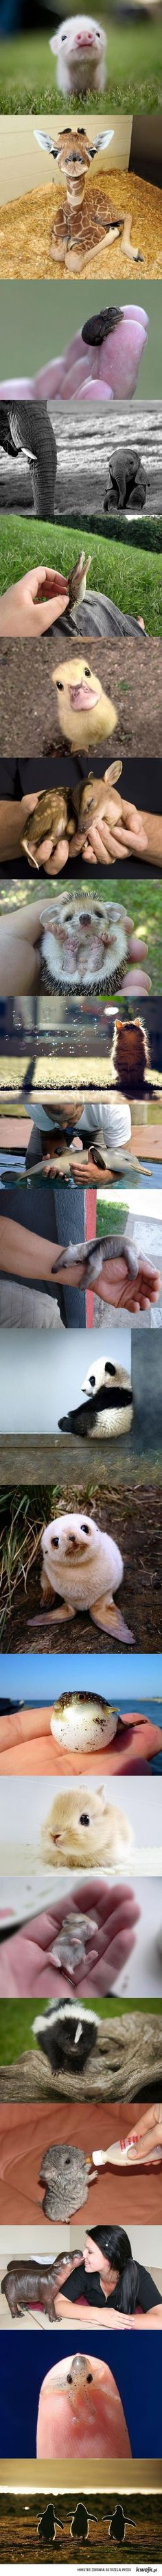 Awwww!!!! OMG SO CUTE!! Baby animals yay!! Ya!